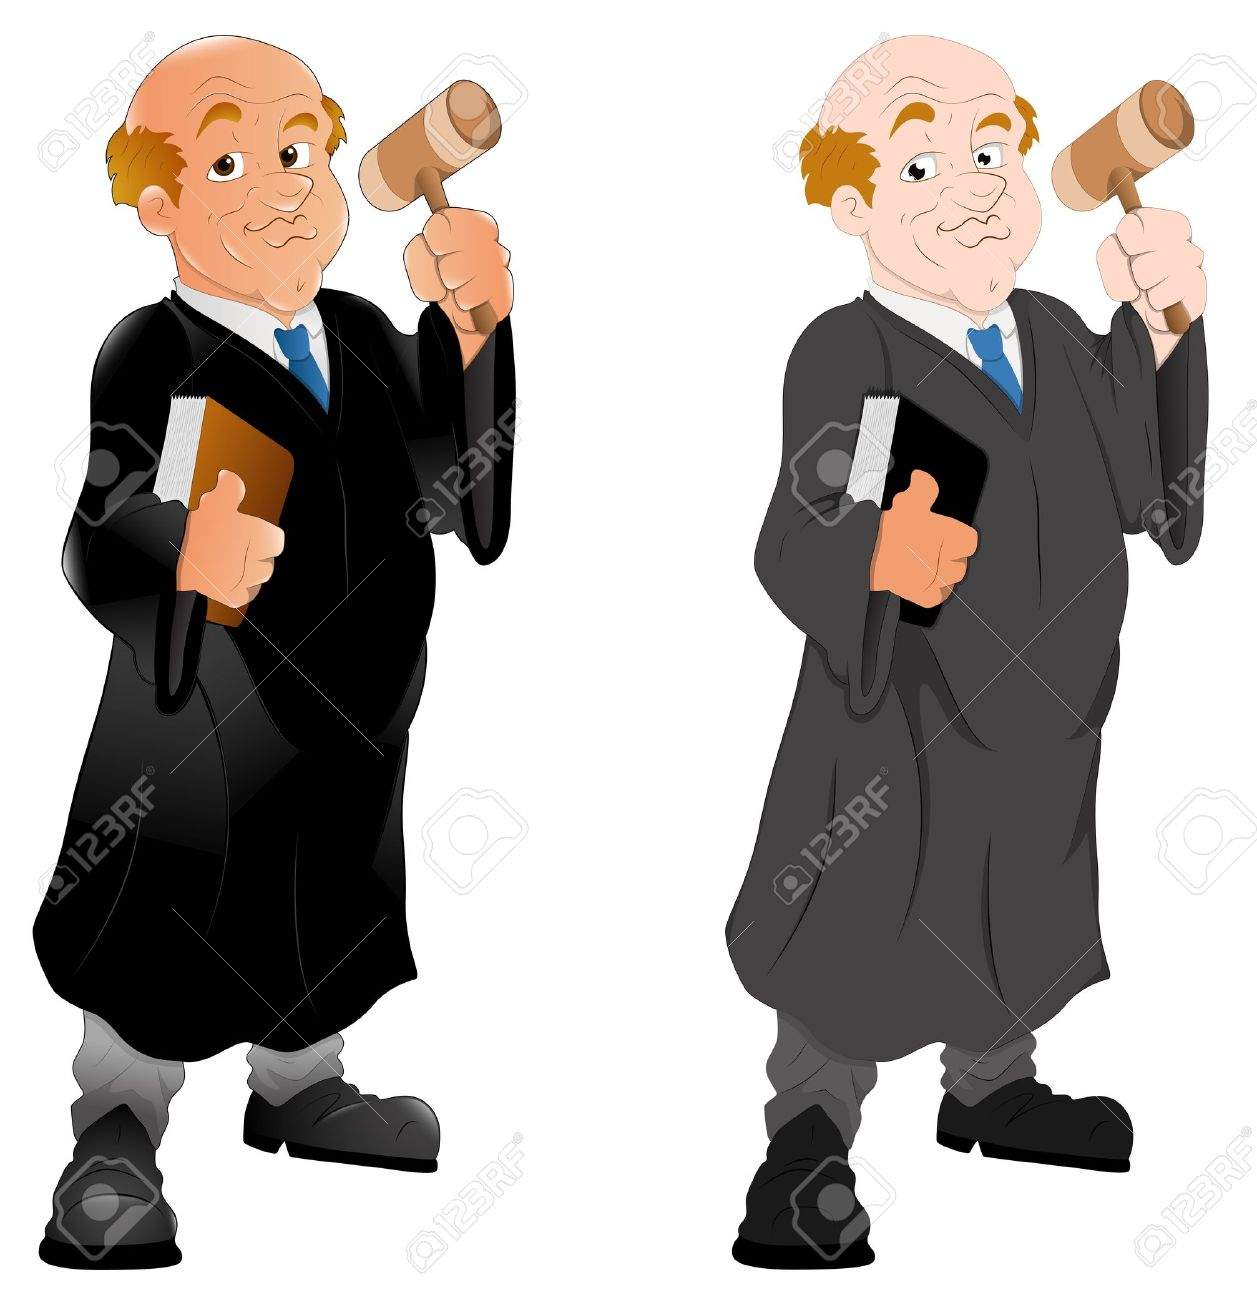 Lawyer Clipart.